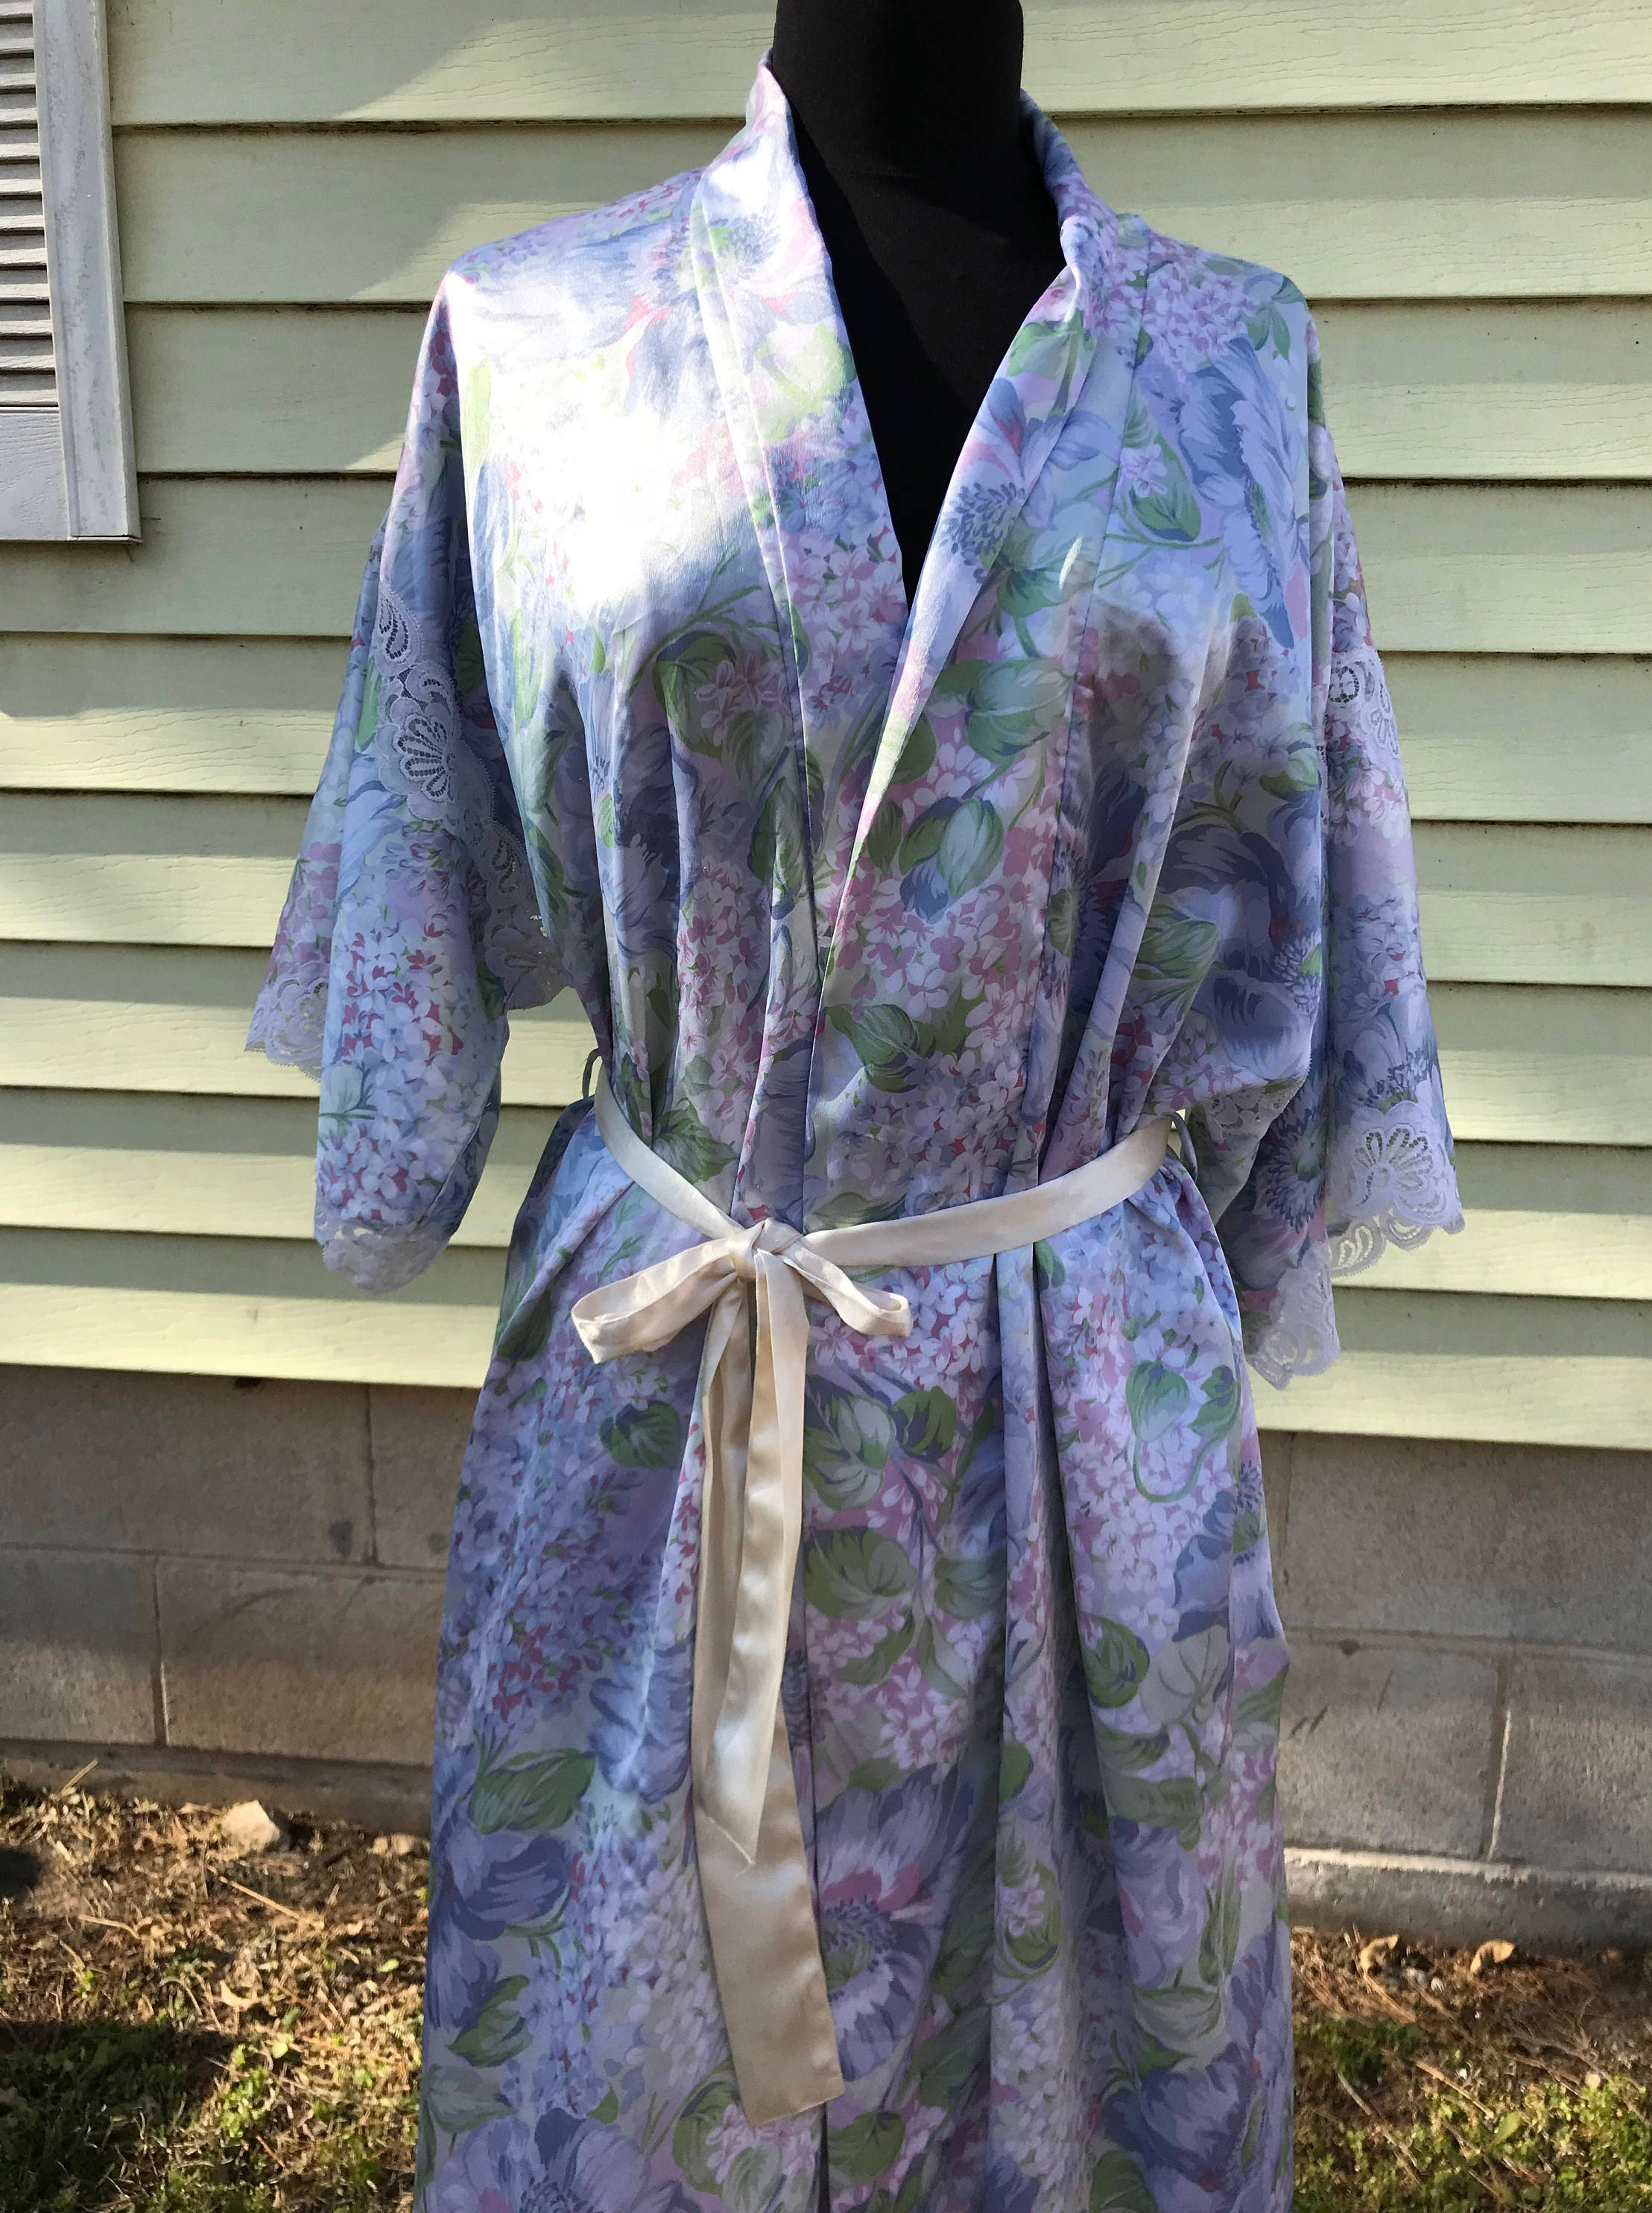 Christian Dior Satin Wrap Robe Dressing Gown/1960s 70s/Pastel Floral/Small Med./Neiman Marcus/Kimono/Lounge Wear/Pre Wedding Photo/NY Paris